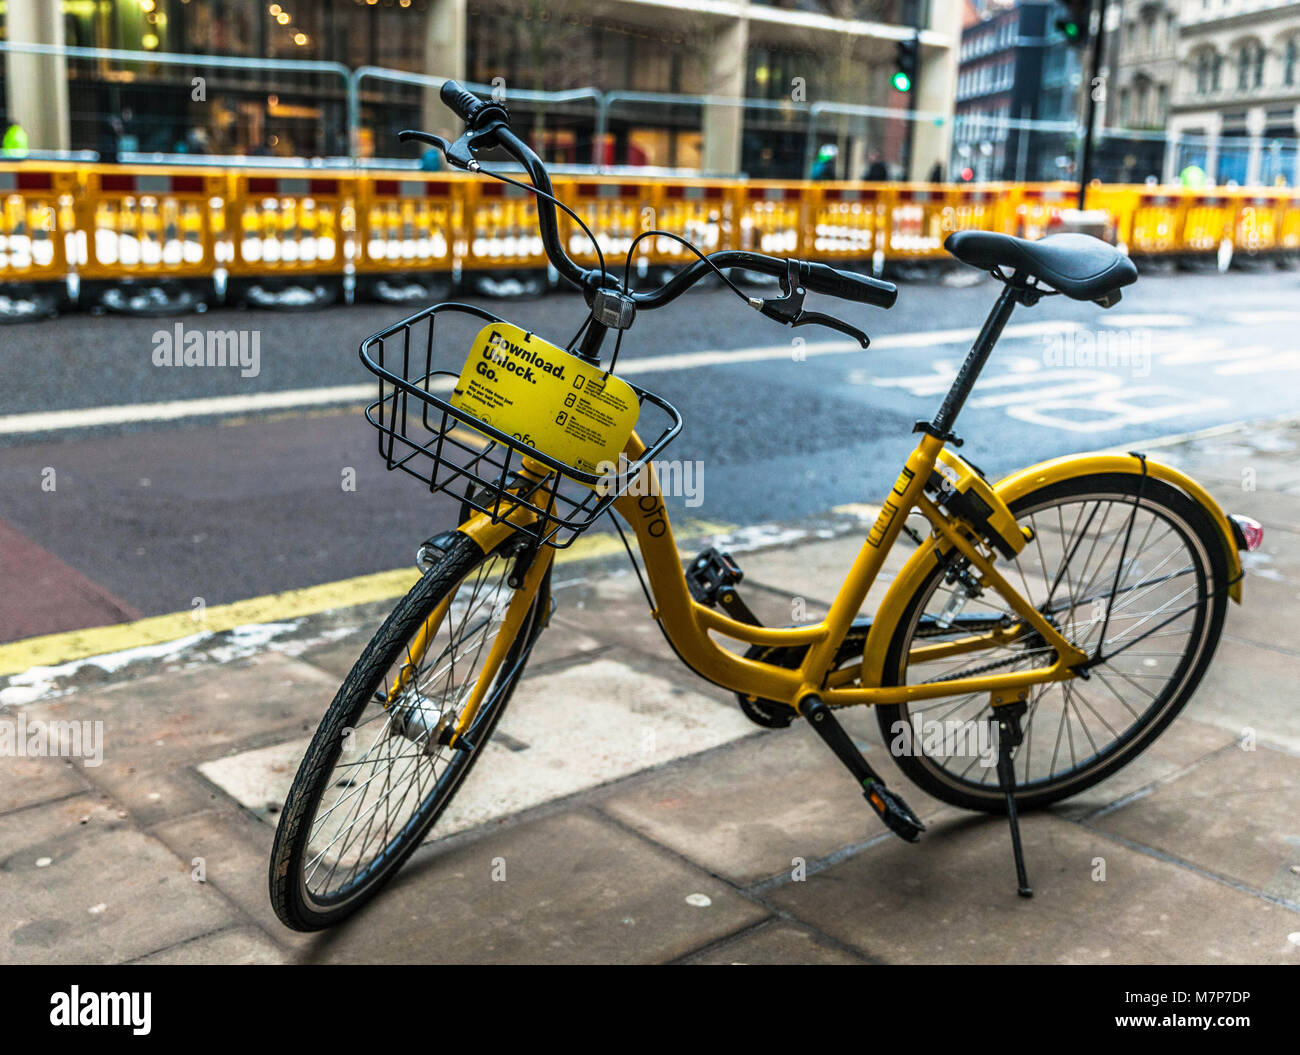 Dockless Bicycle Stock Photos Amp Dockless Bicycle Stock